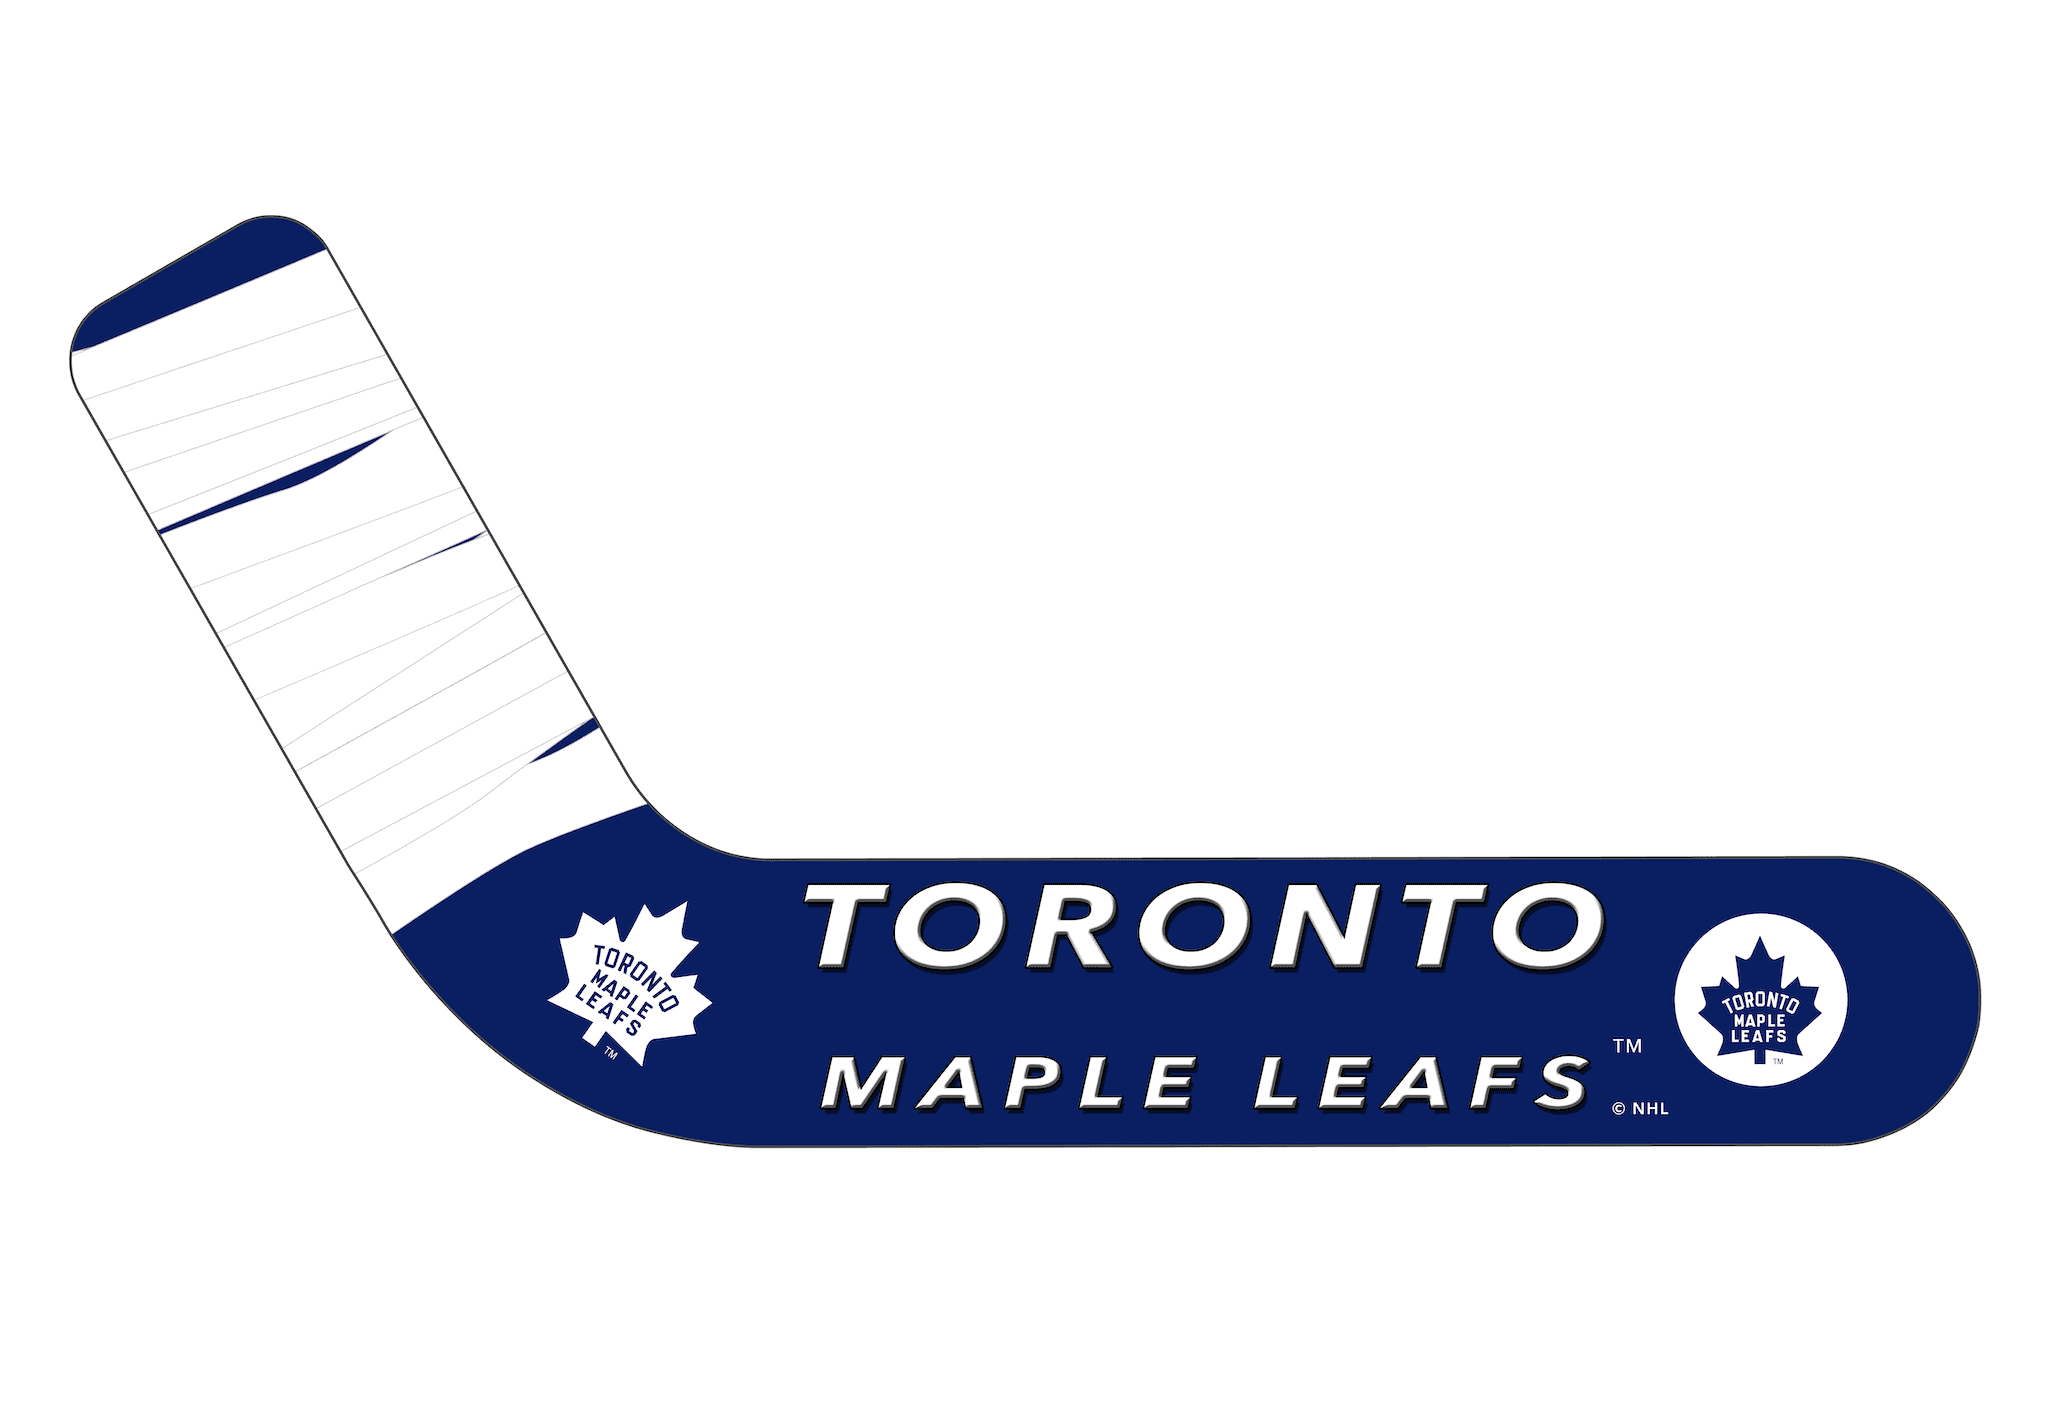 Vintage Toronto Maple Leafs 1967 - Ultimate Hockey Ceiling Fans